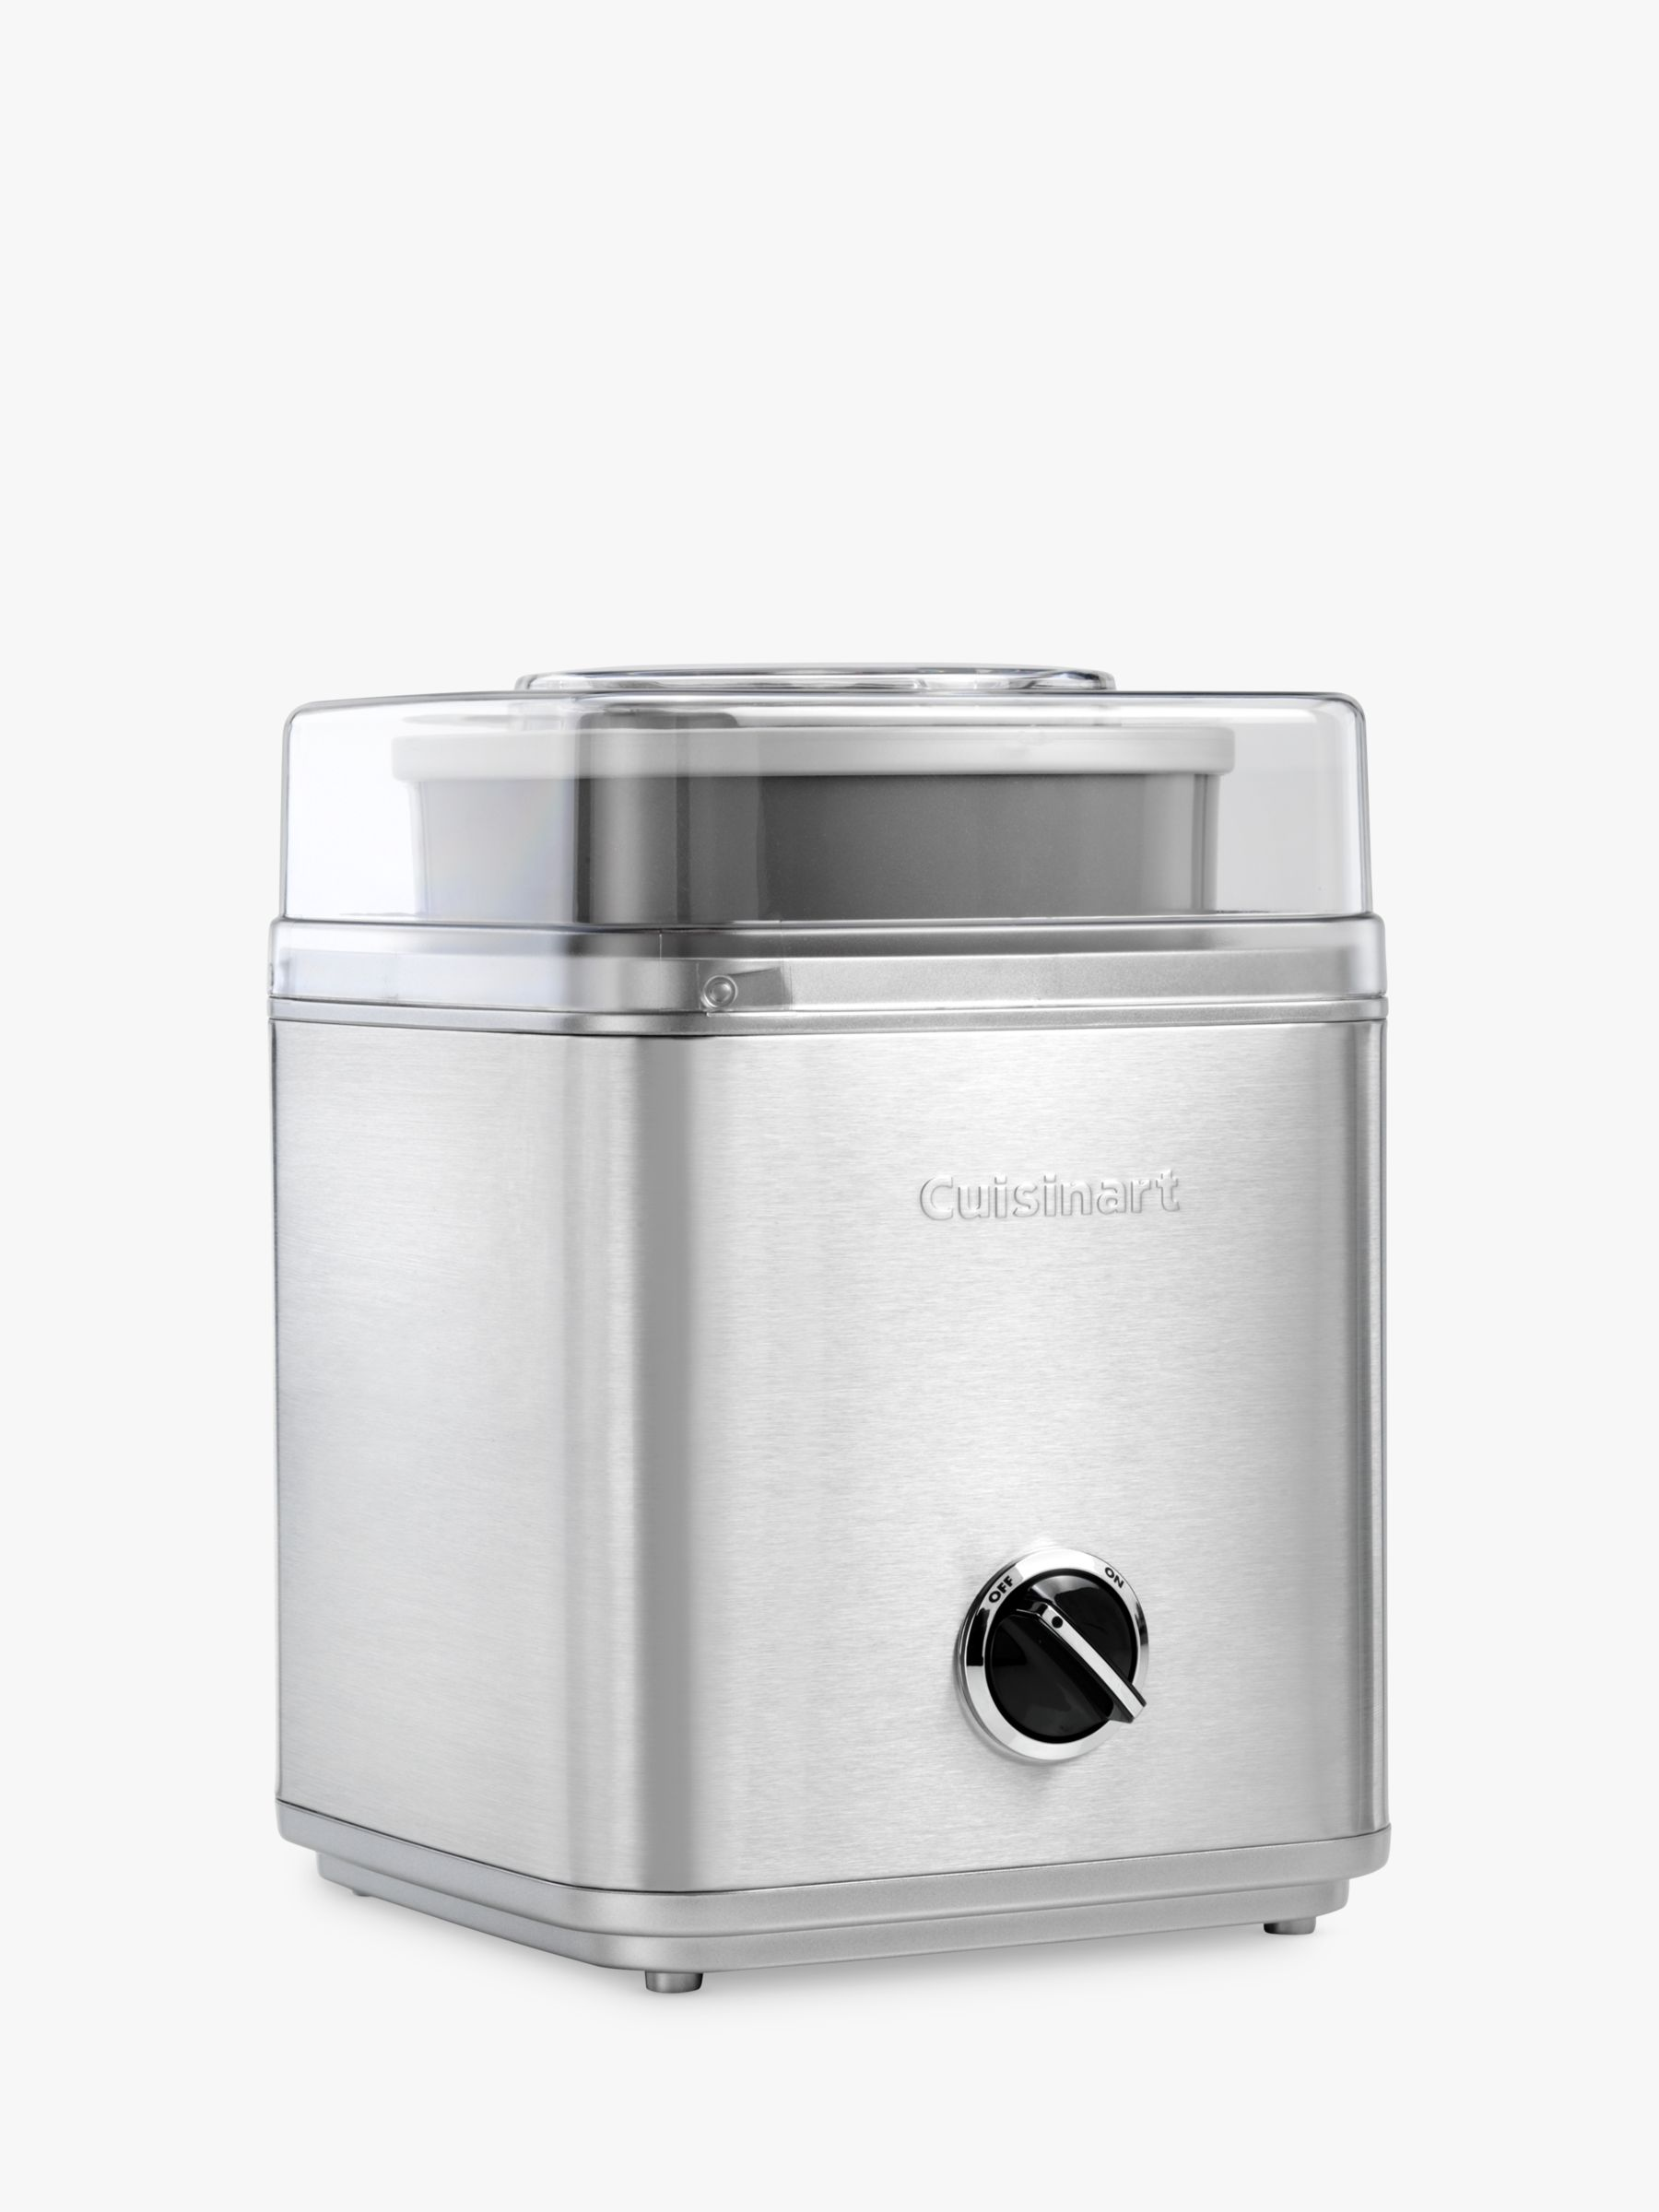 Cuisinart Ice30bcu Ice Cream Maker Silver At John Lewis Partners